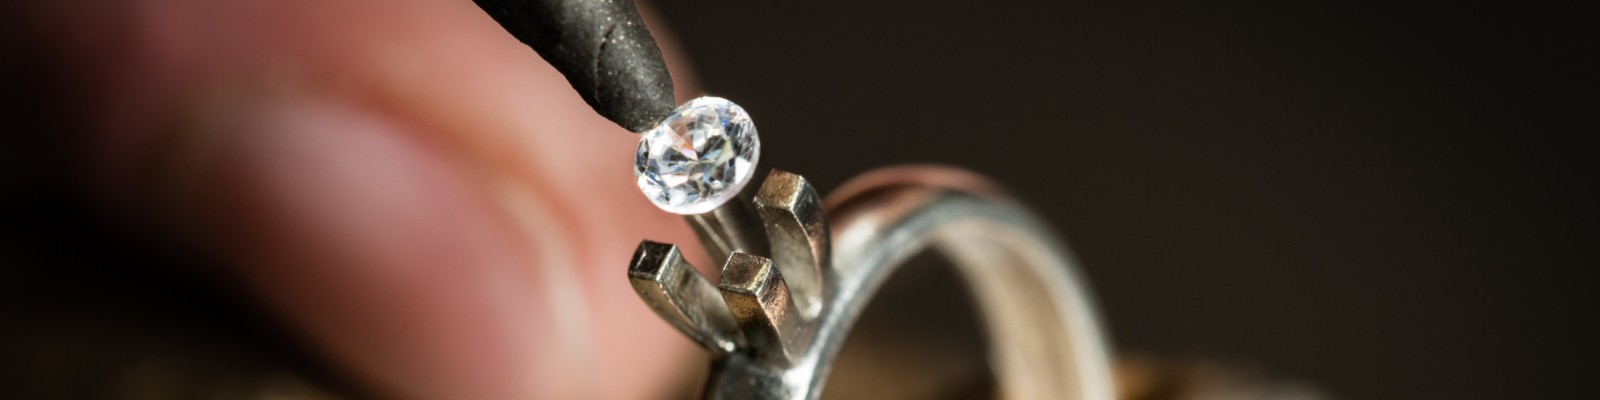 Jewelry Repair Services at BARONS Jewelers